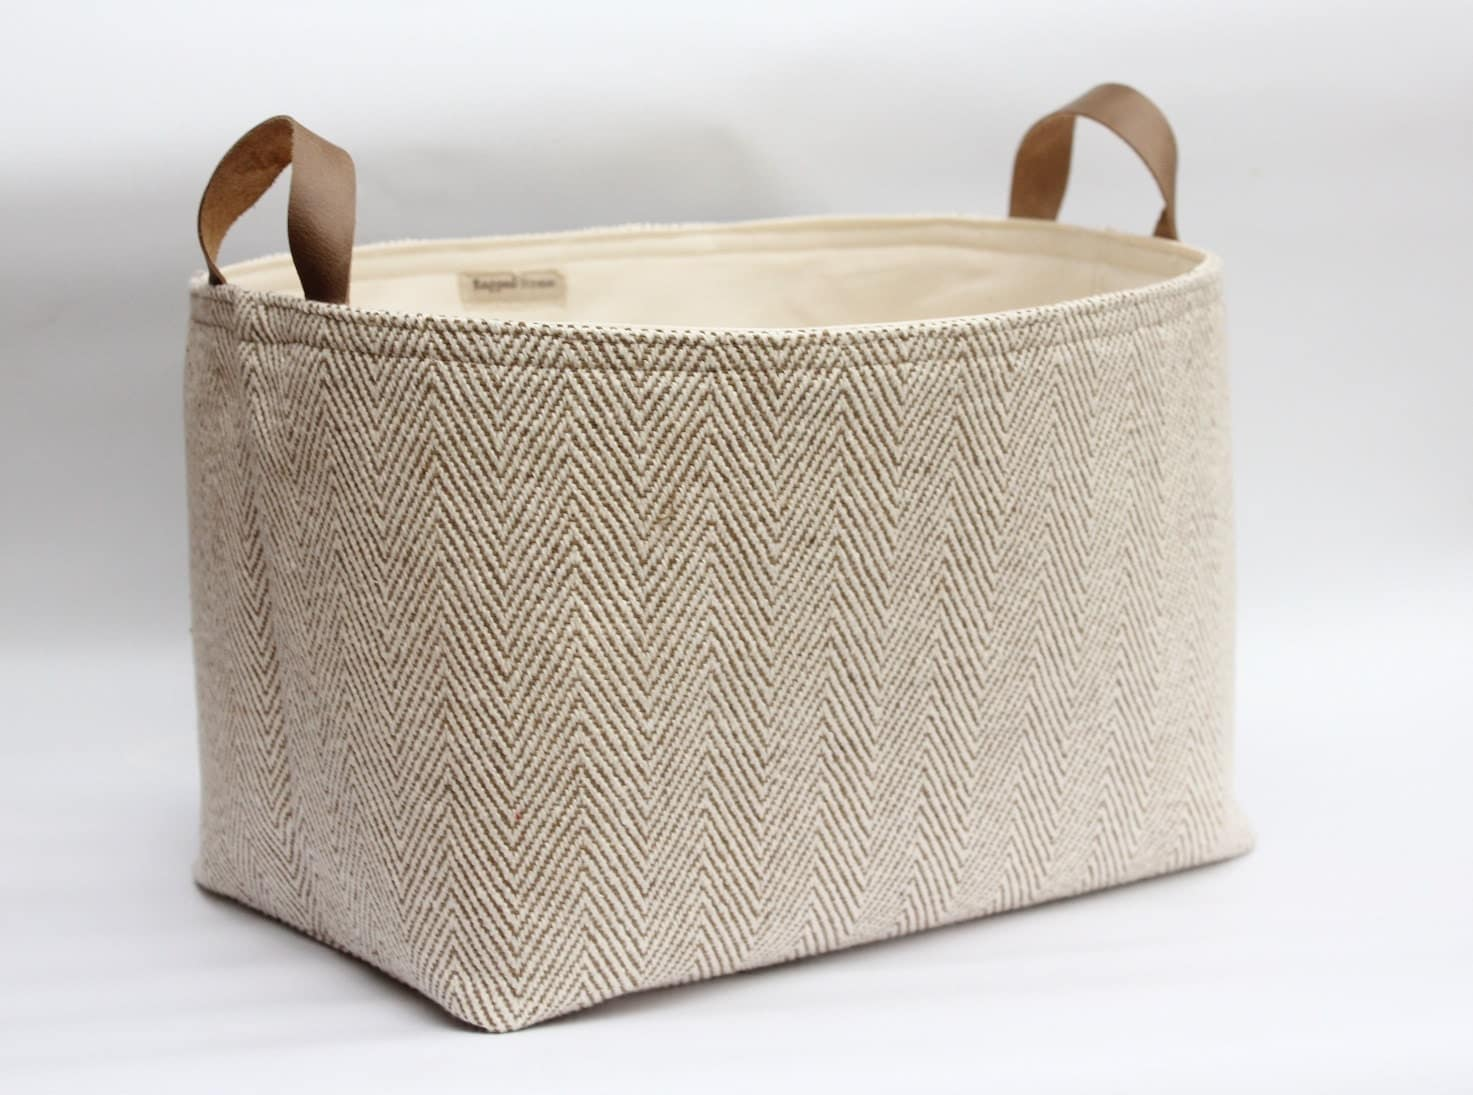 Fabric Storage Basket Herringbone Woven Cotton Leather